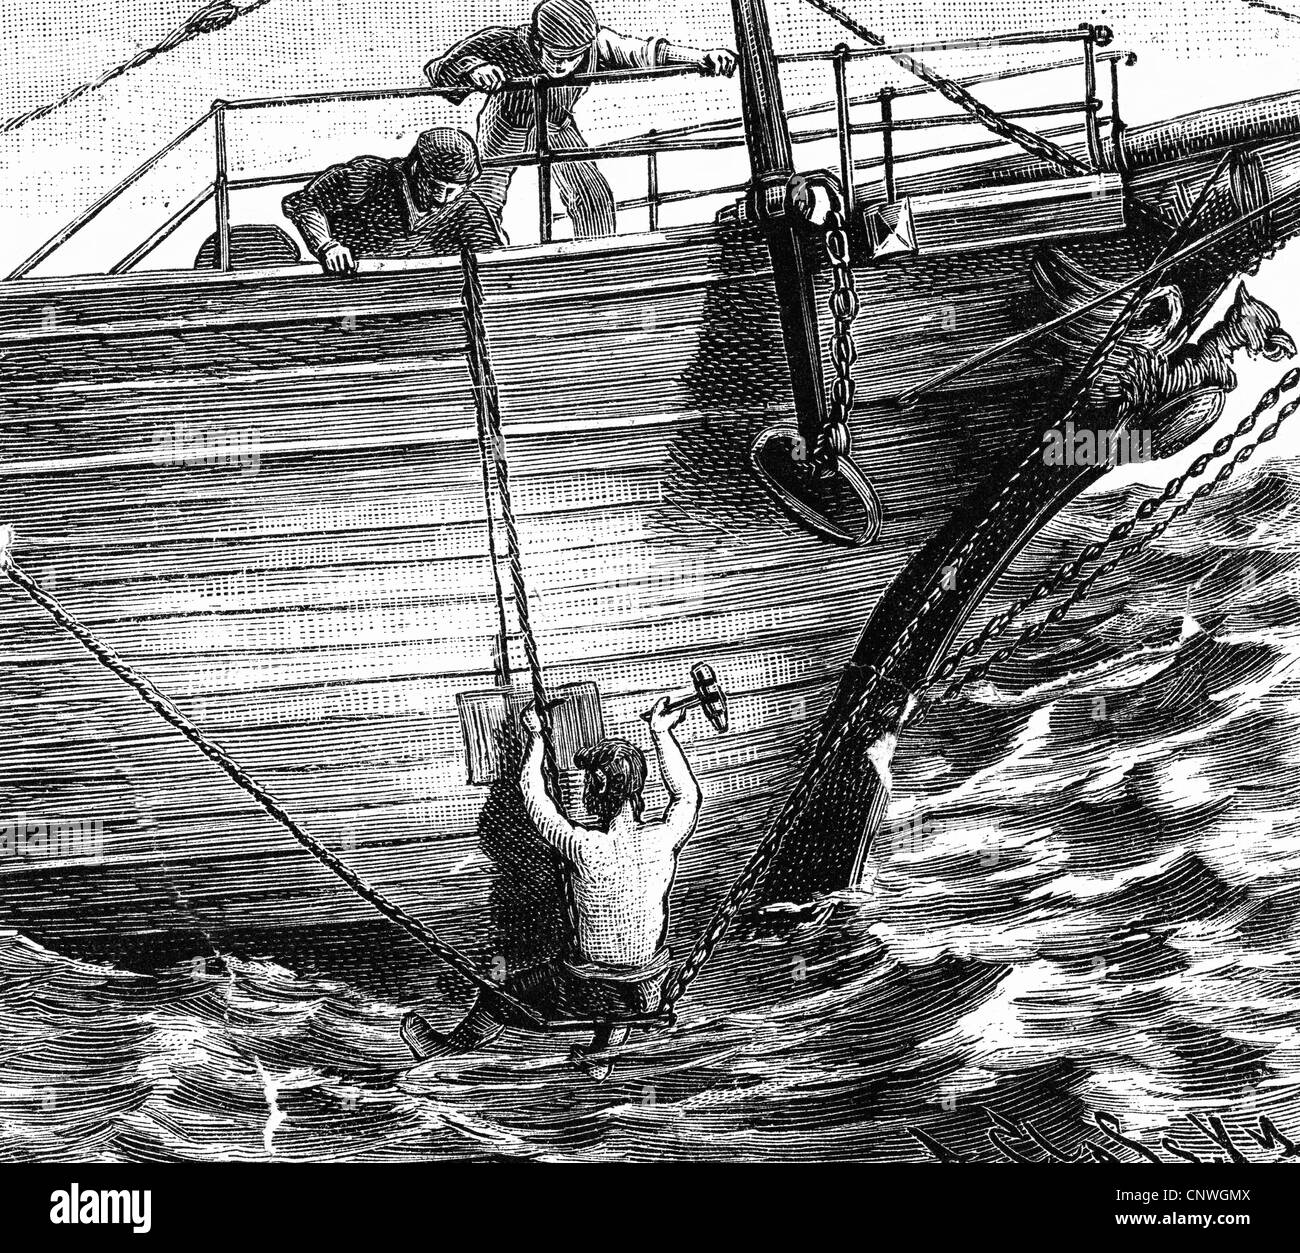 transport / transportation, navigation, life and work at sea, fixing a leak at high sea, wood engraving after drawing - Stock Image